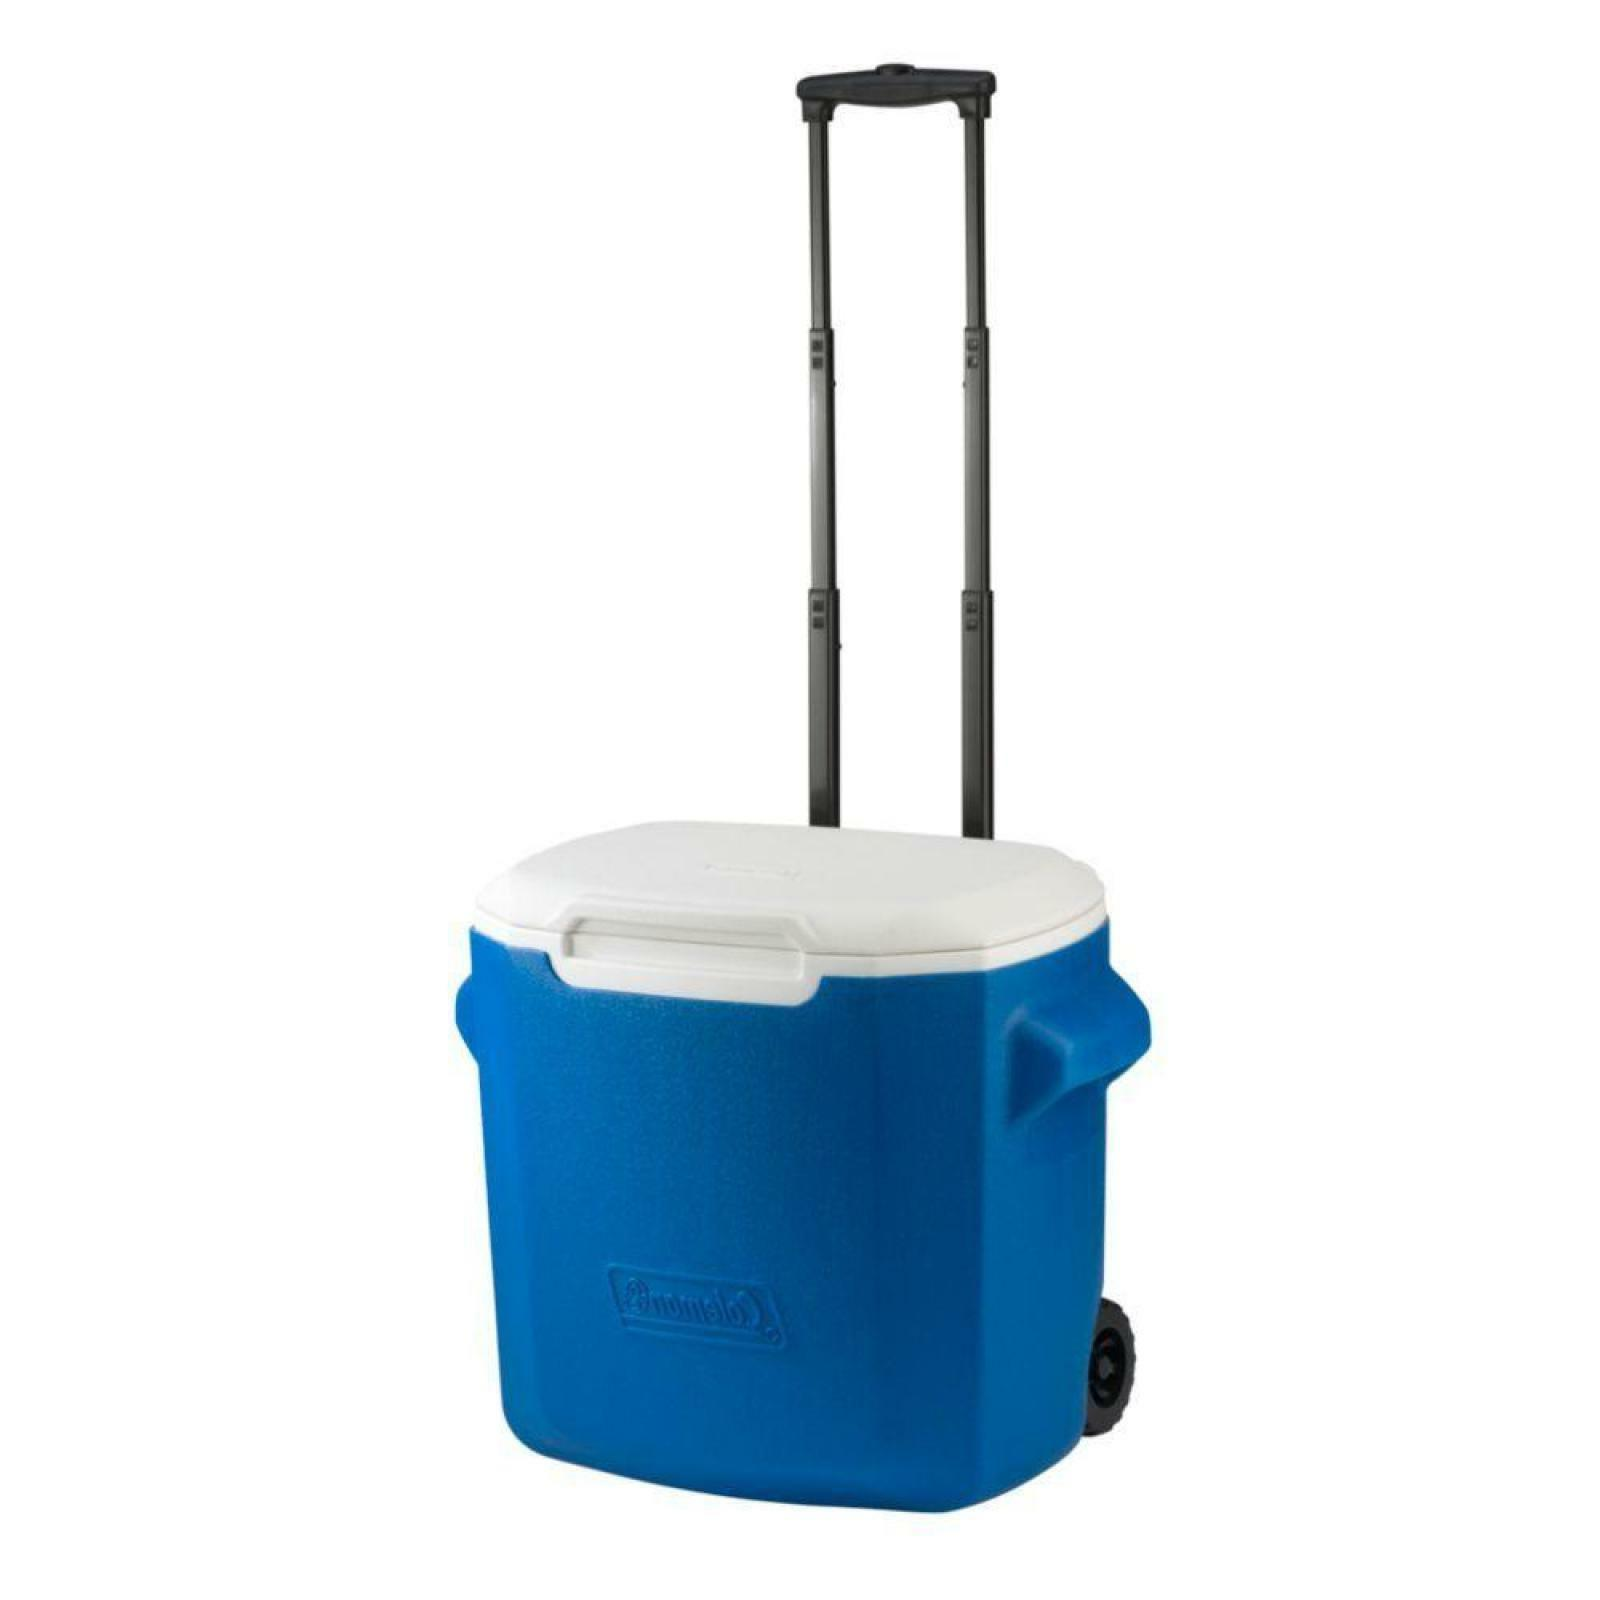 Wheeled Cooler Blue 16 Qt.Camping Ice Box Travel Outdoor Hik